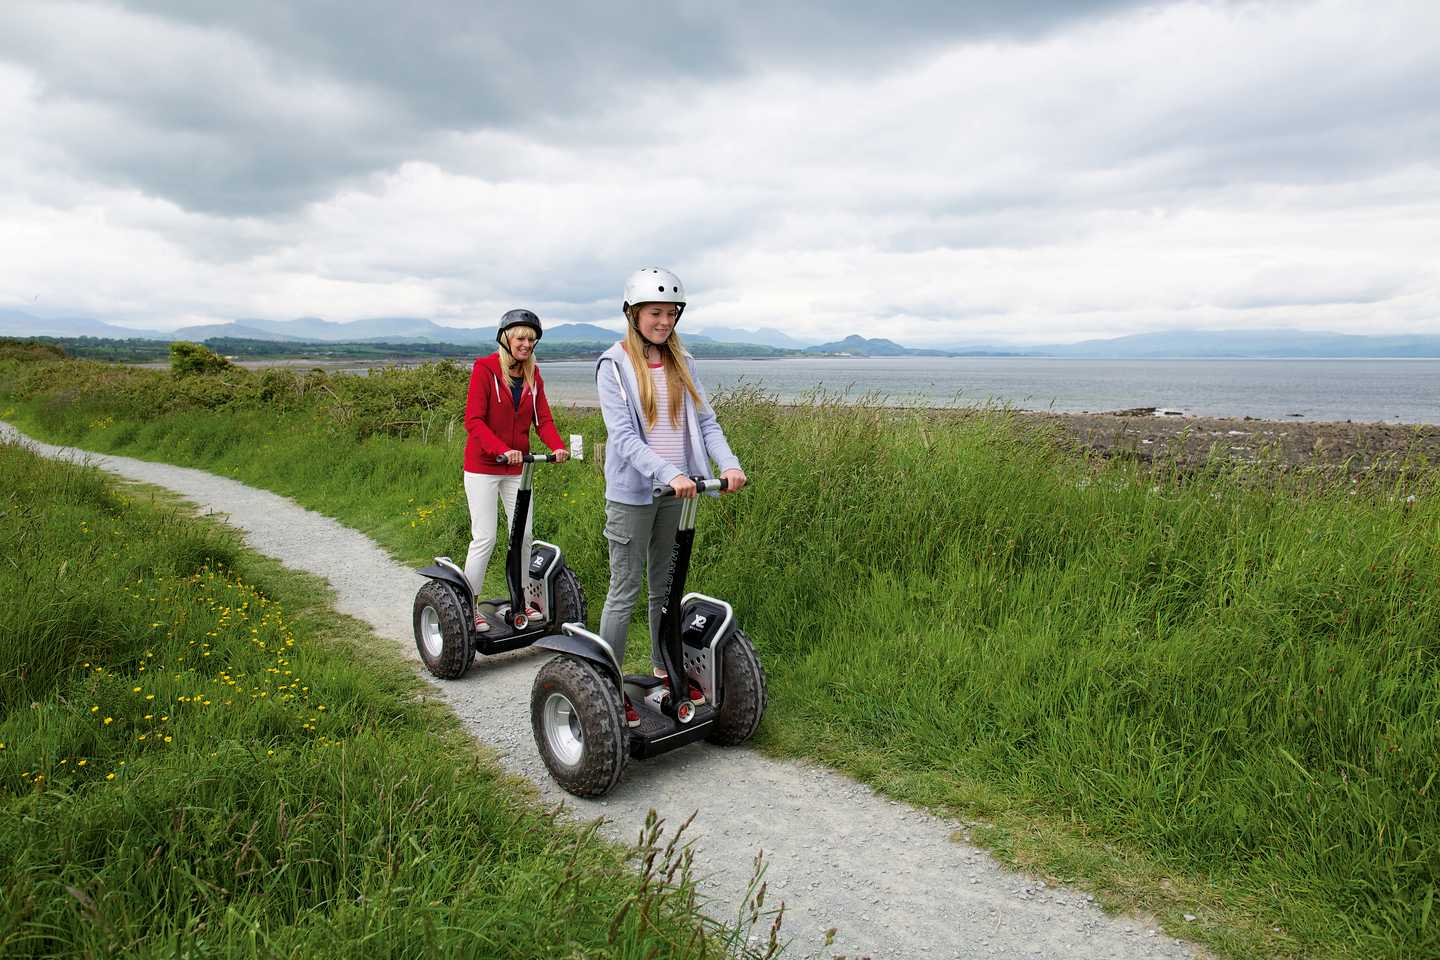 Guests exploring the park on Segways